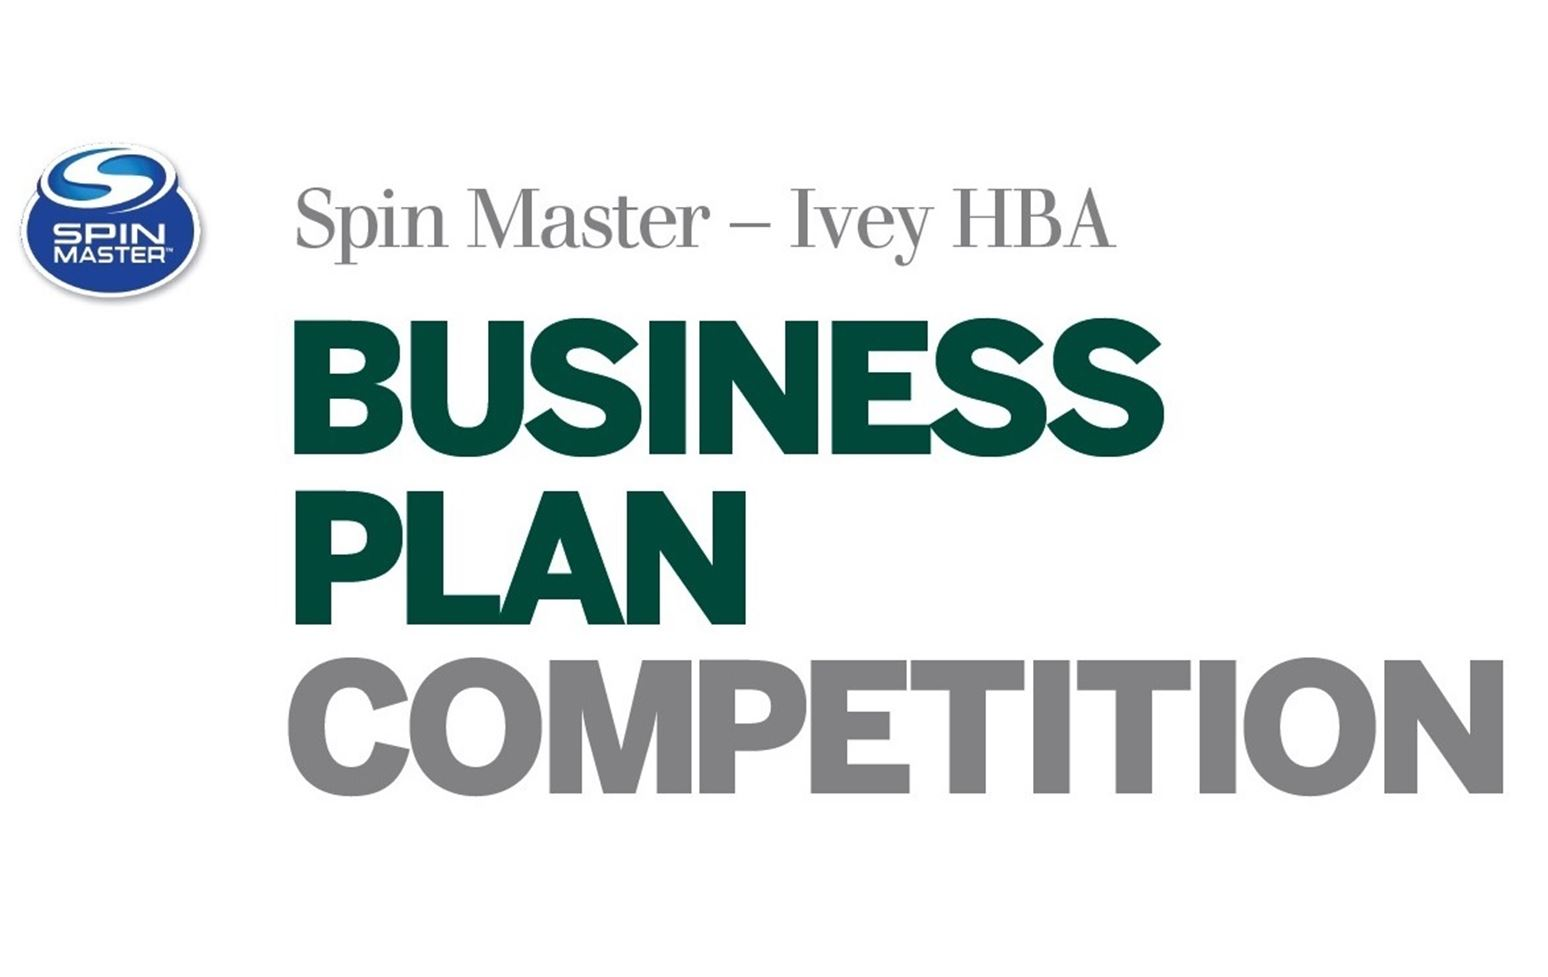 2017 Spin Master - Ivey HBA Business Plan Competition